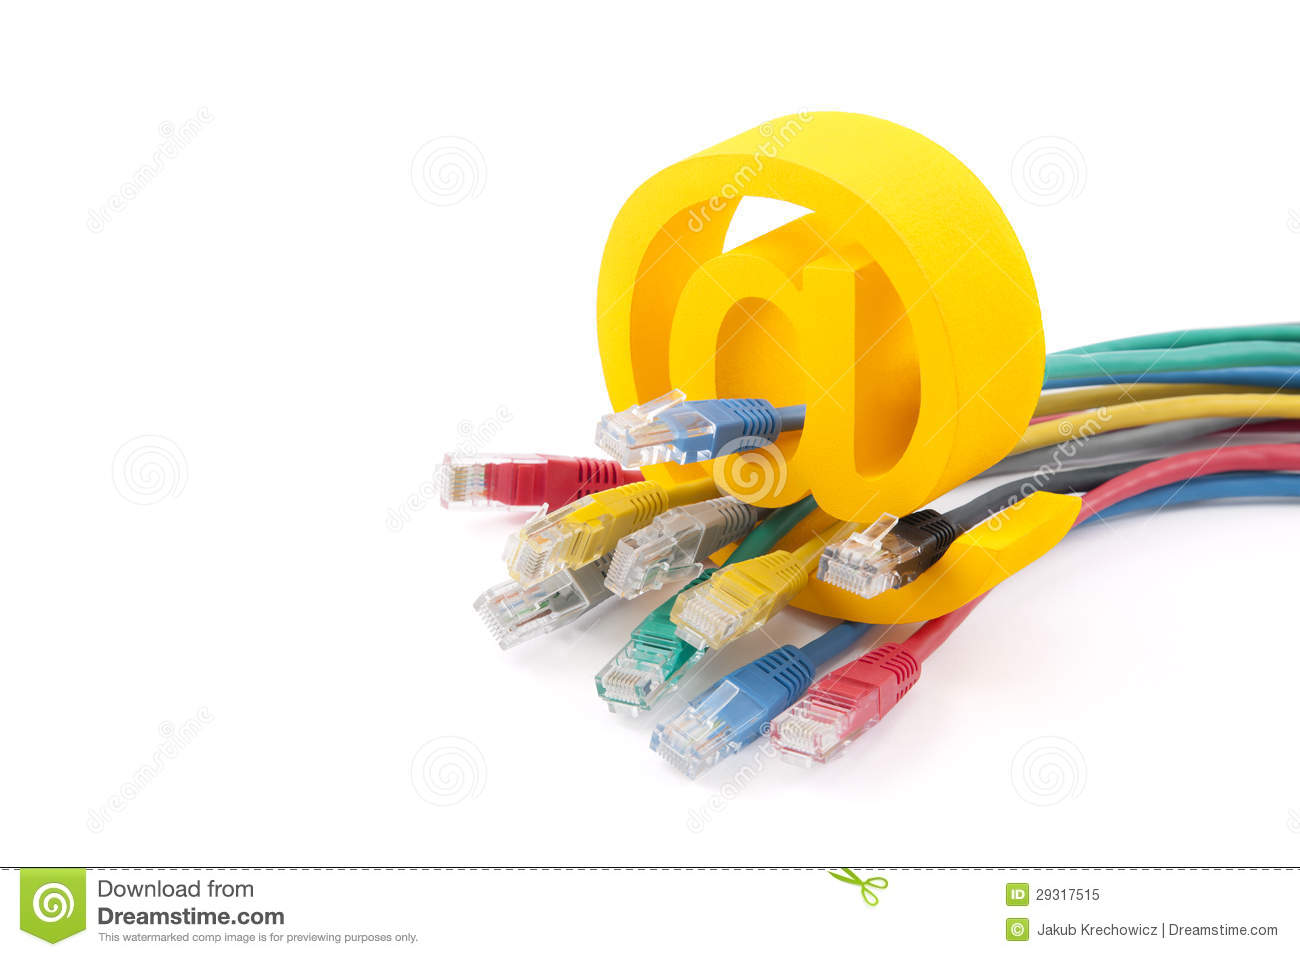 Hdmi To Rca Wiring Diagram furthermore Thinkstation D30 besides Royalty Free Stock Image Vector Simple Electronic Tree Image22537096 in addition Watch as well Connecting Old Webcam Via Usb. on motherboard audio diagram